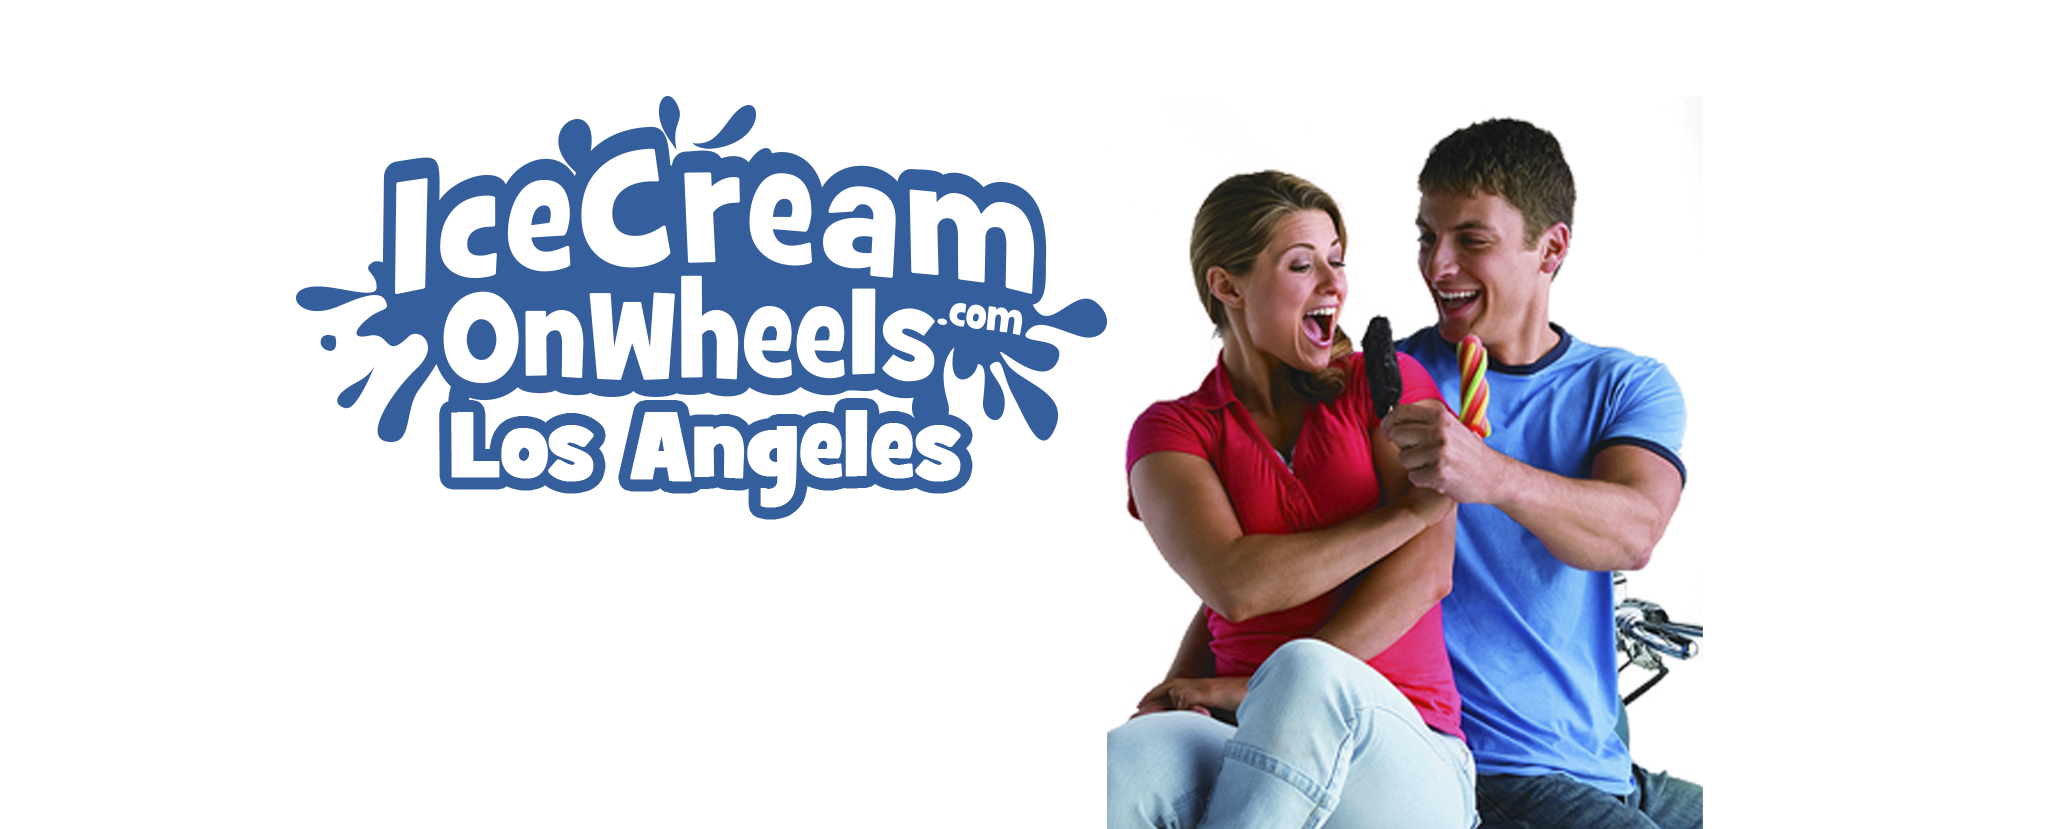 Summer Camp Ice Cream Trucks Los Angeles